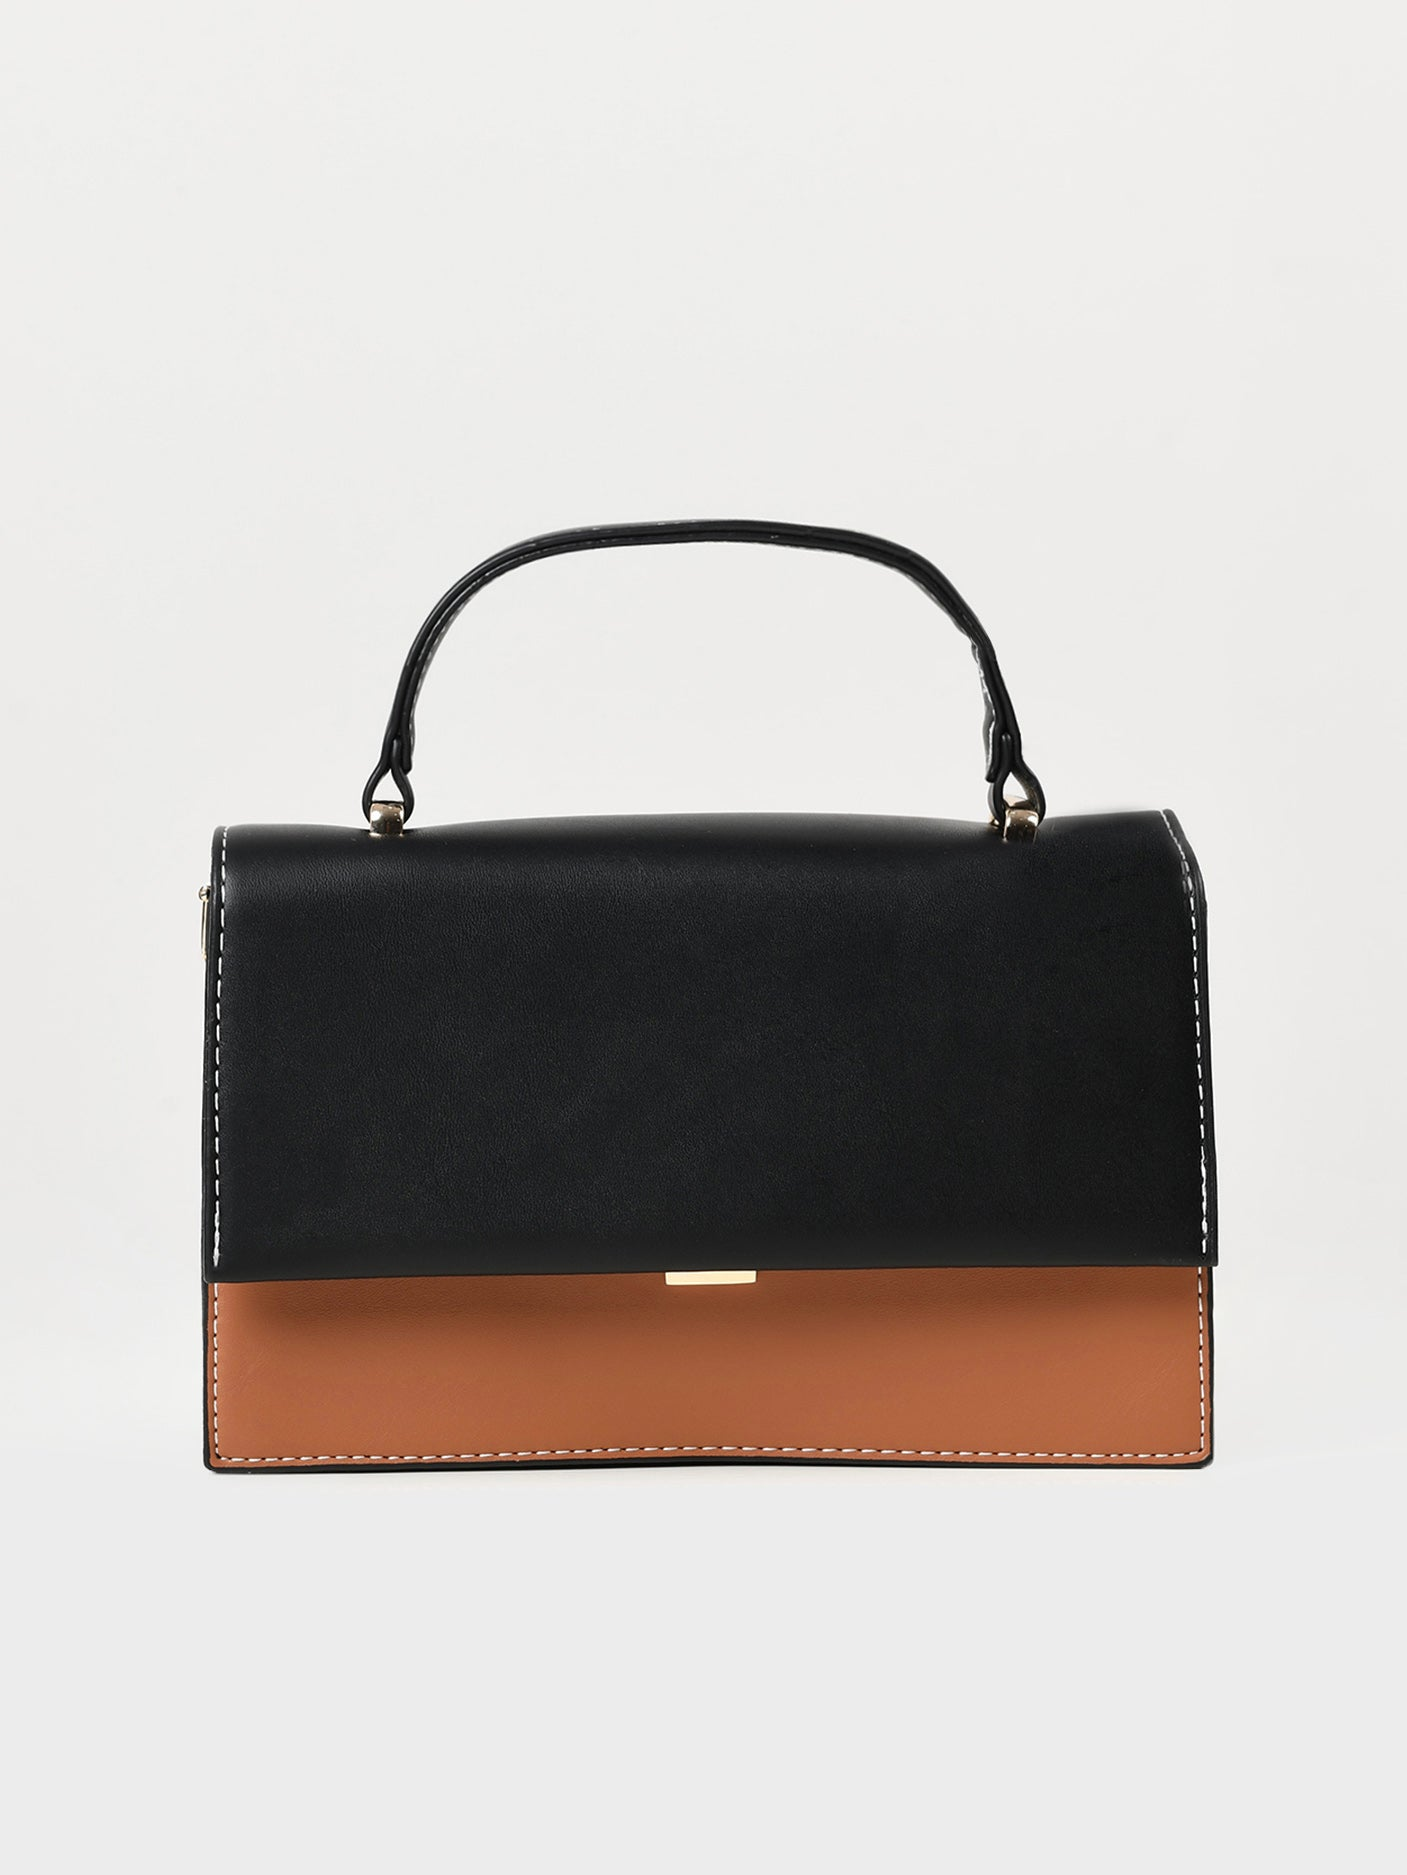 Rectangular Two Toned Handbag